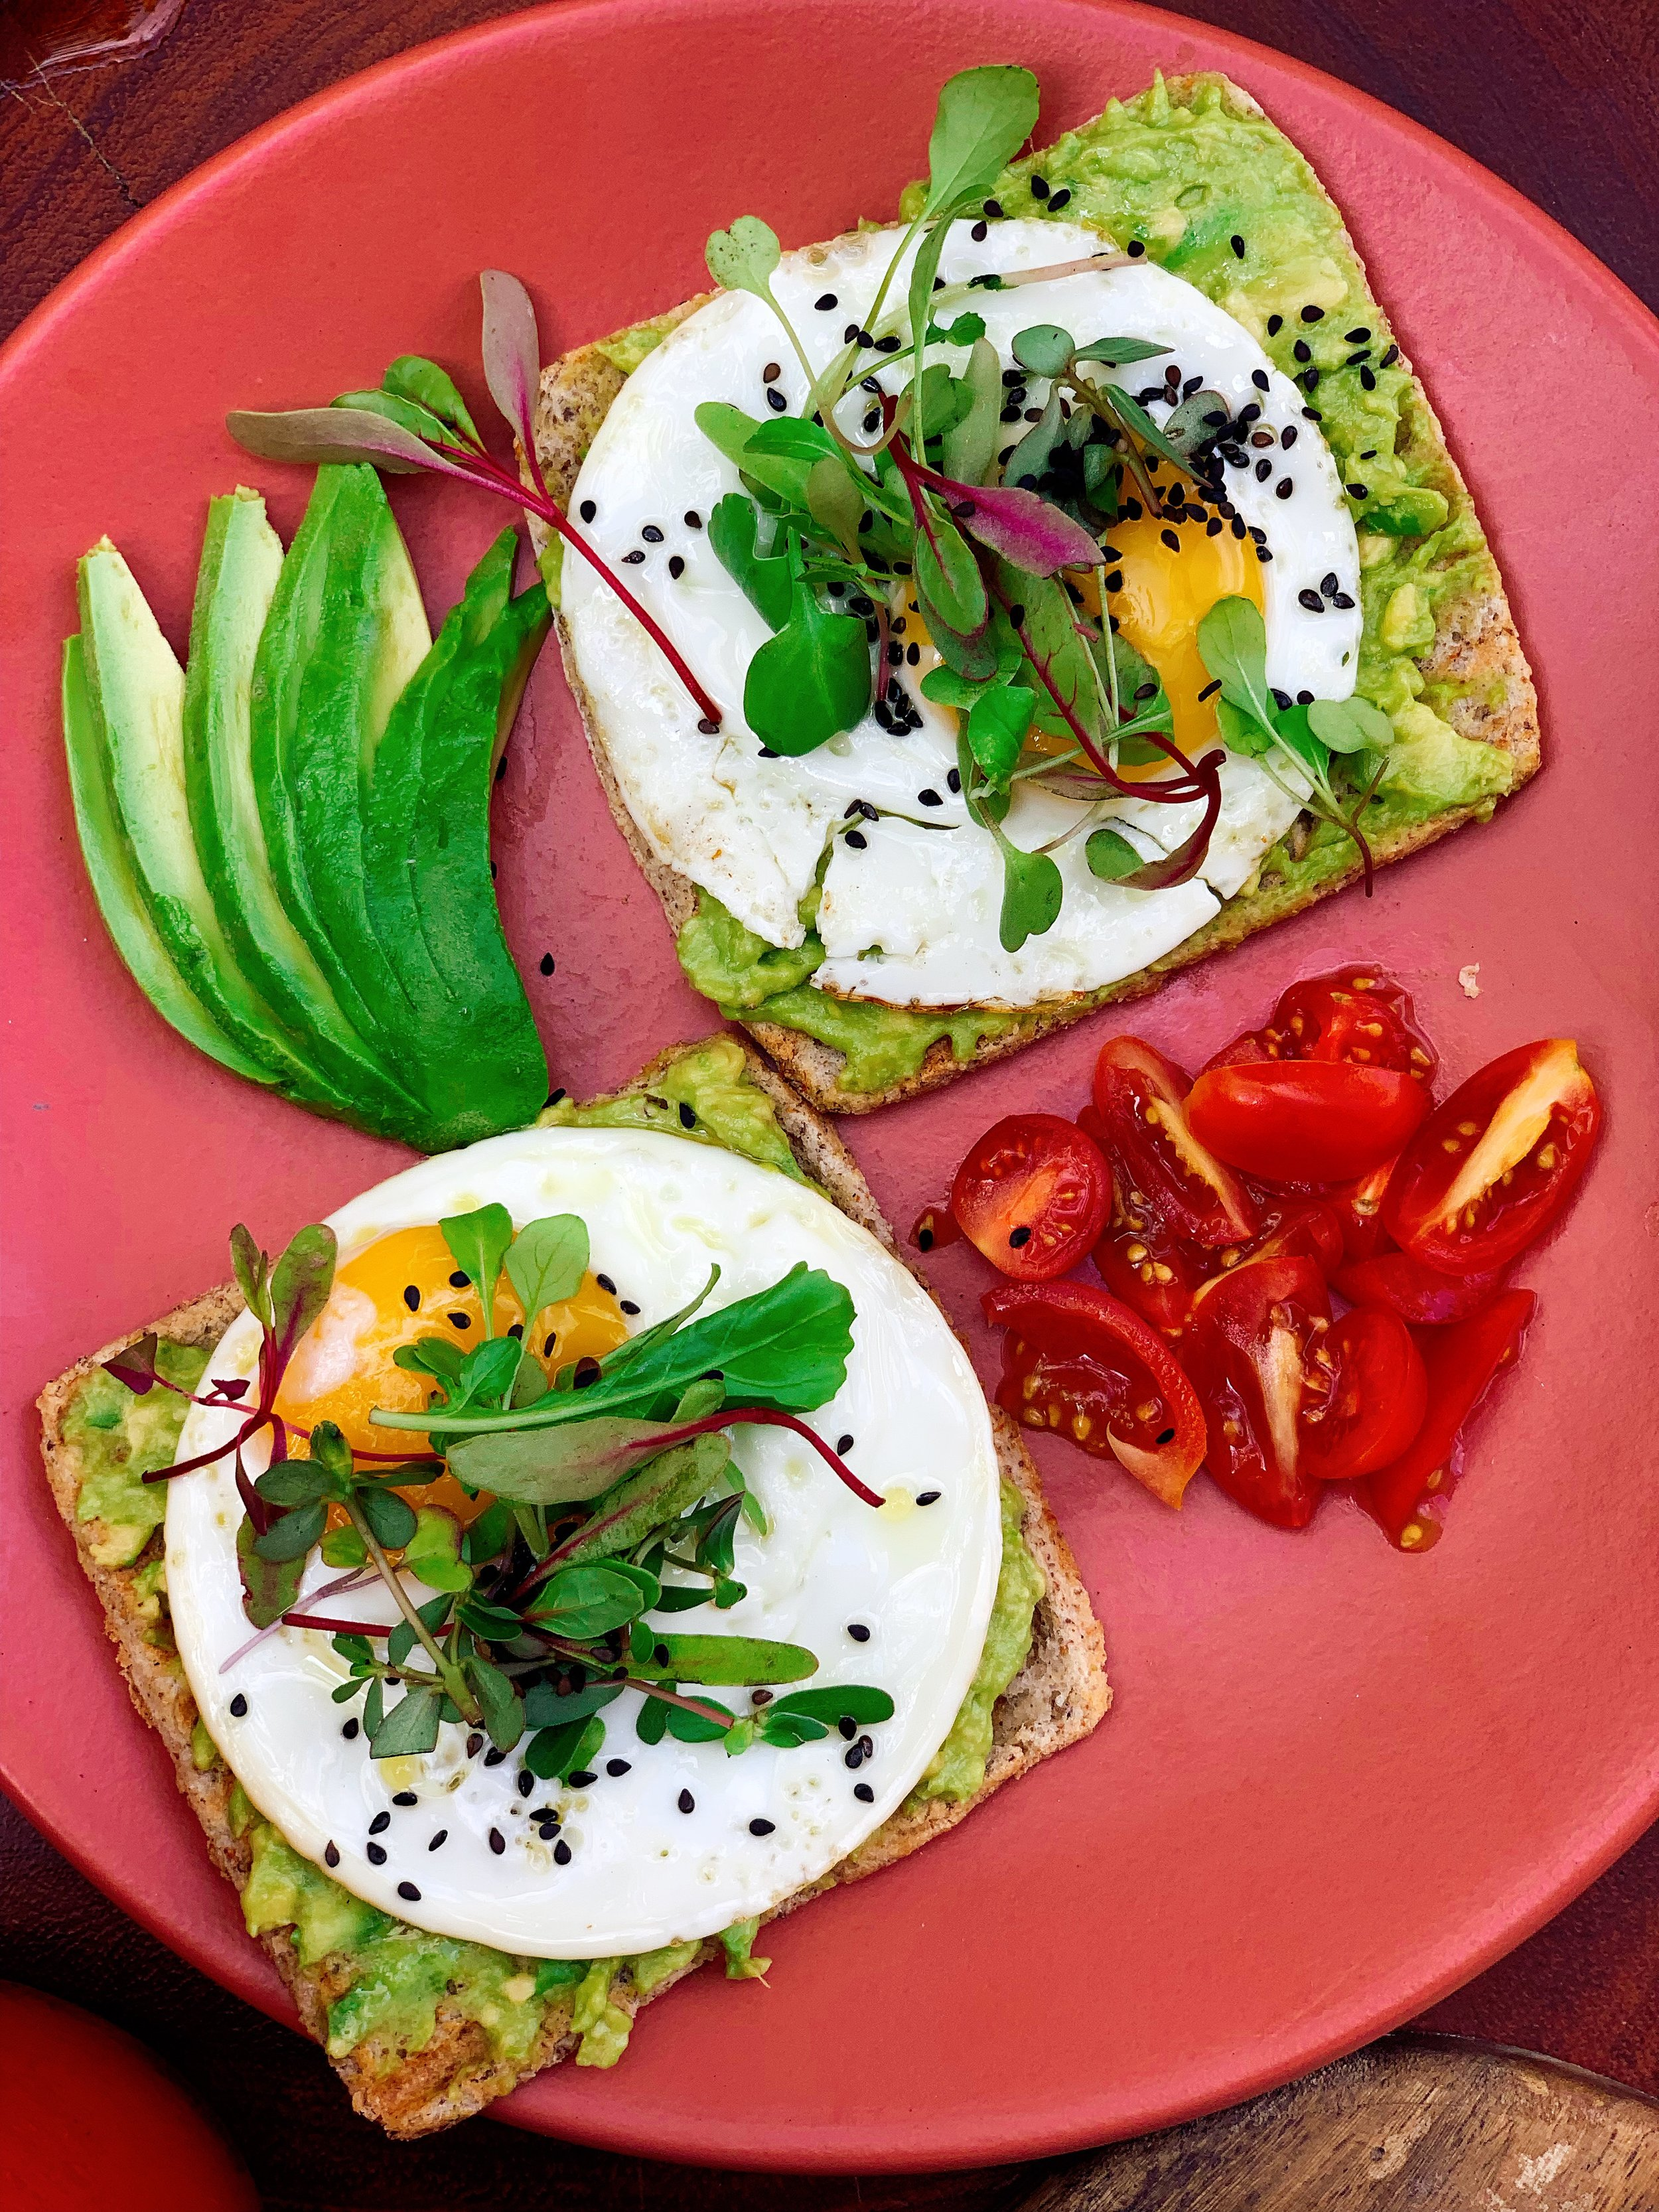 Avocado Toast Topped With Sesame Seeds and Micro Green